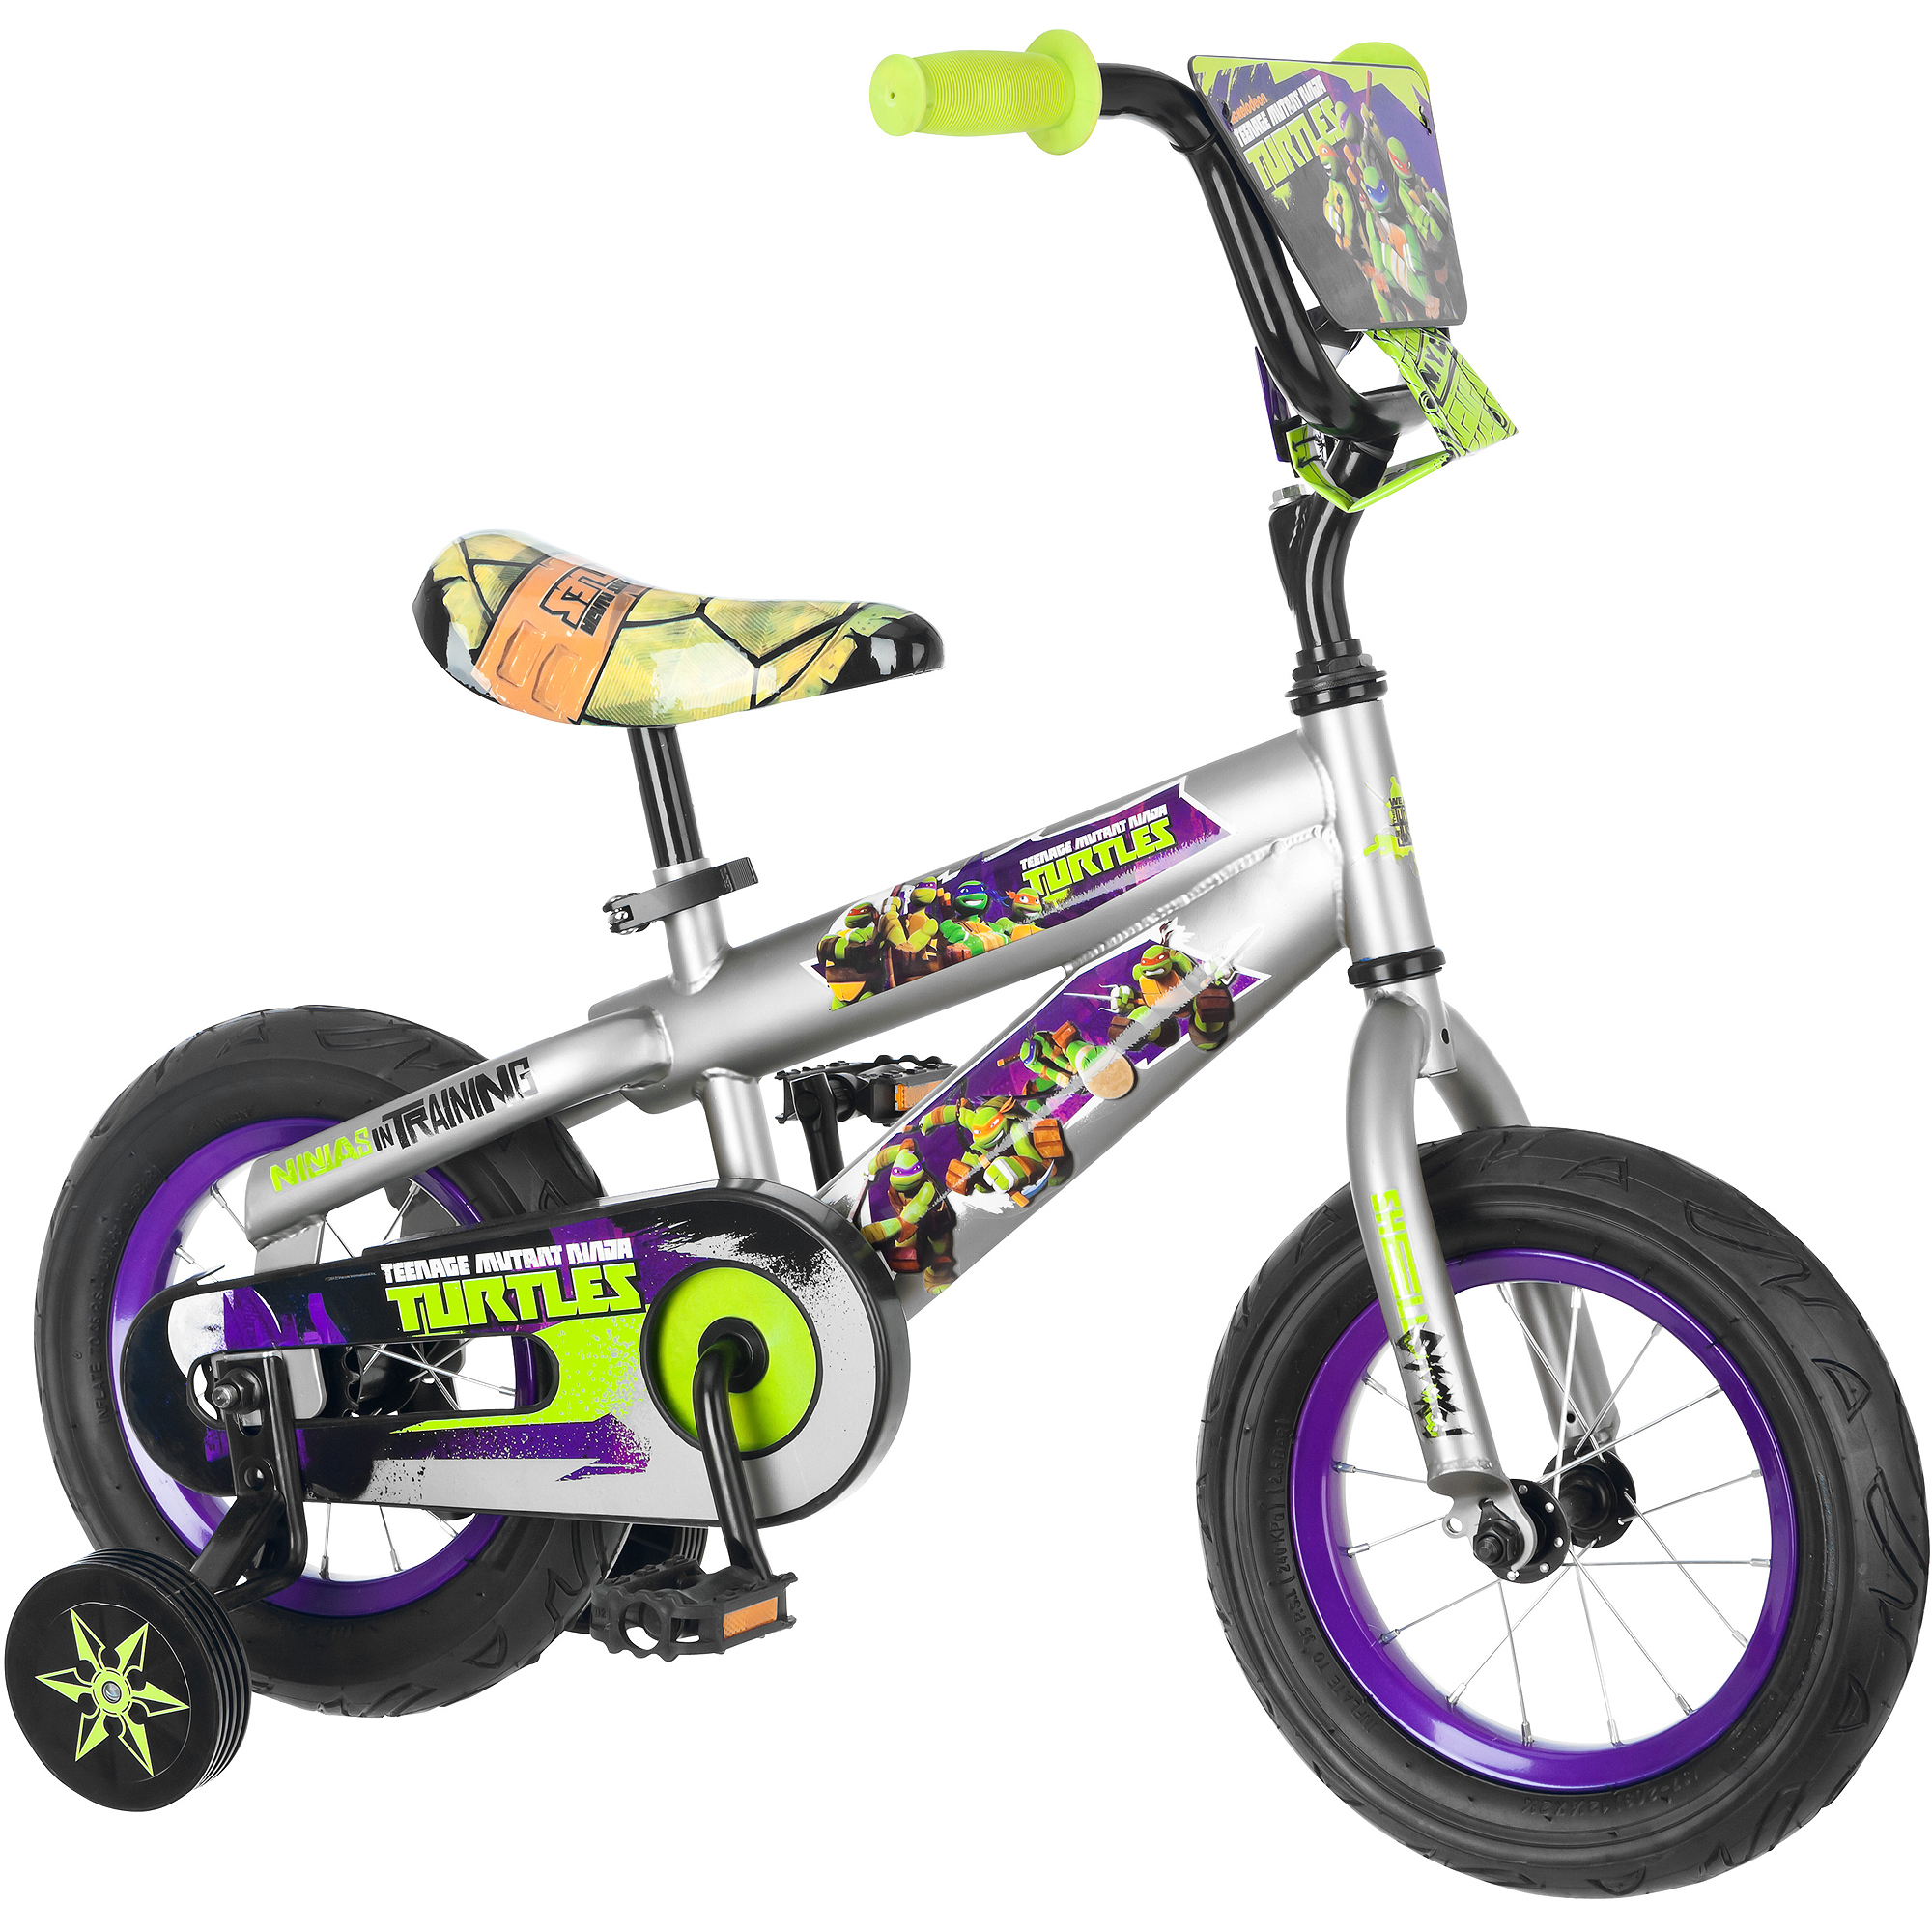 "12"" Teenage Mutant Ninja Turtles Boys' Bike"